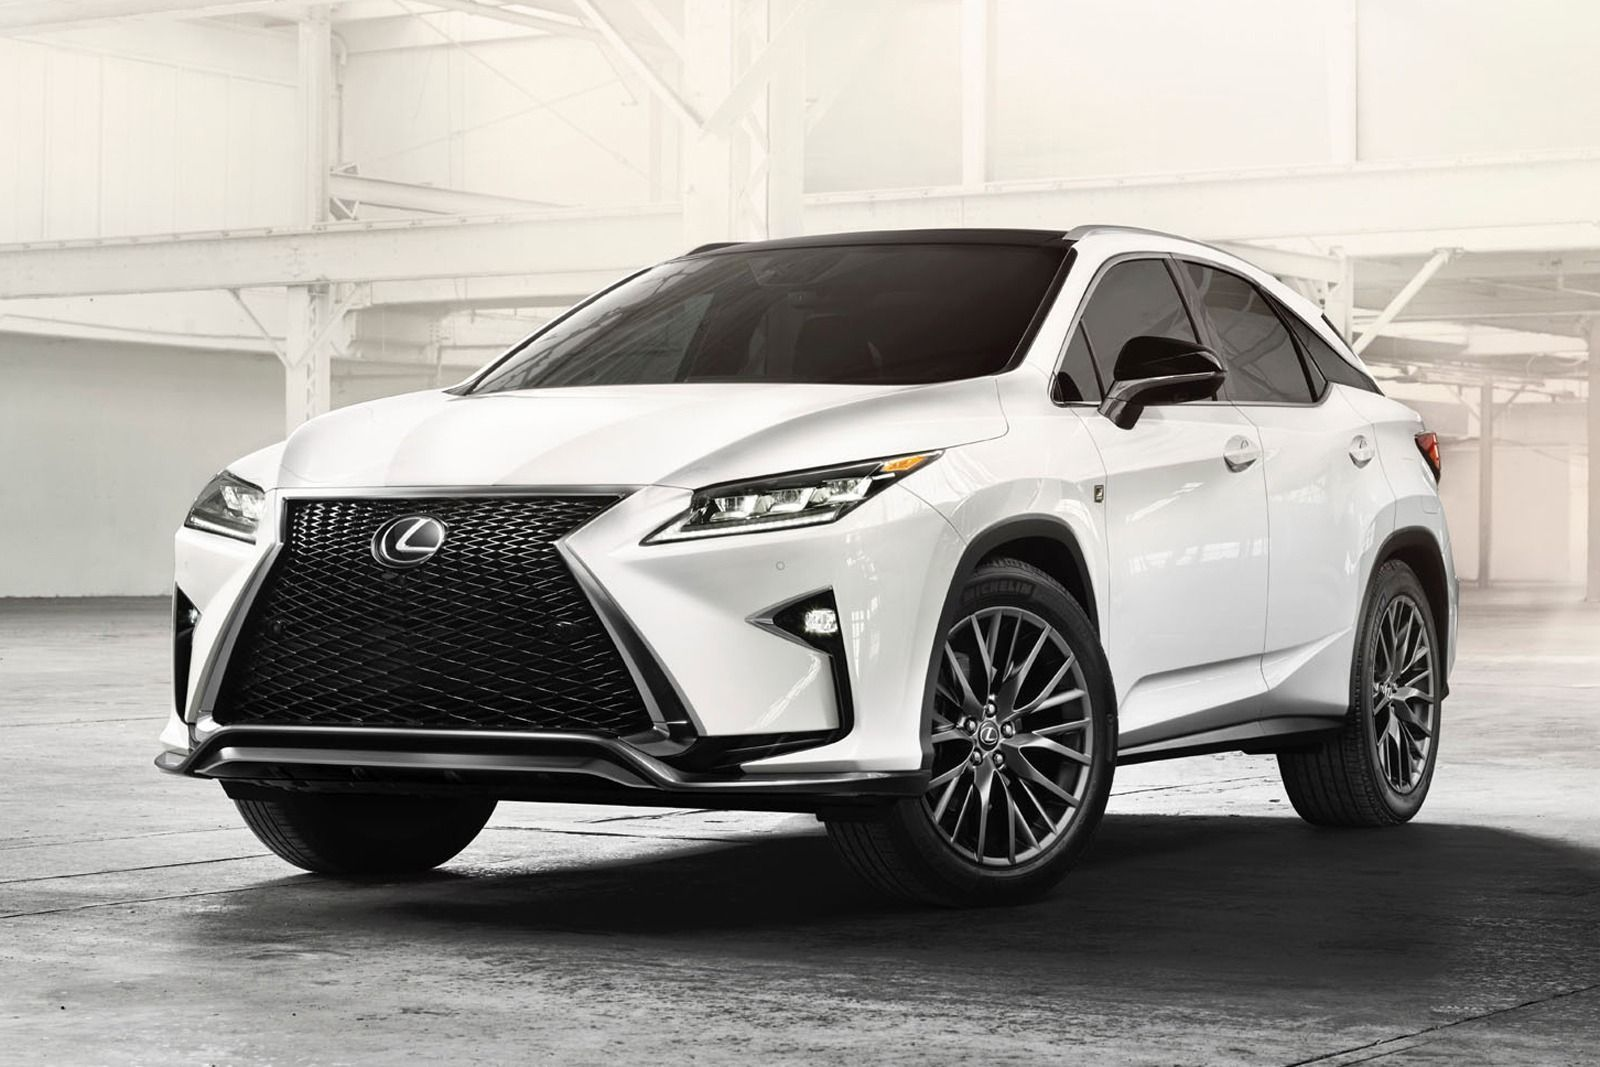 2017 Lexus Rx 350 Price And Specifications Http Newautocarhq